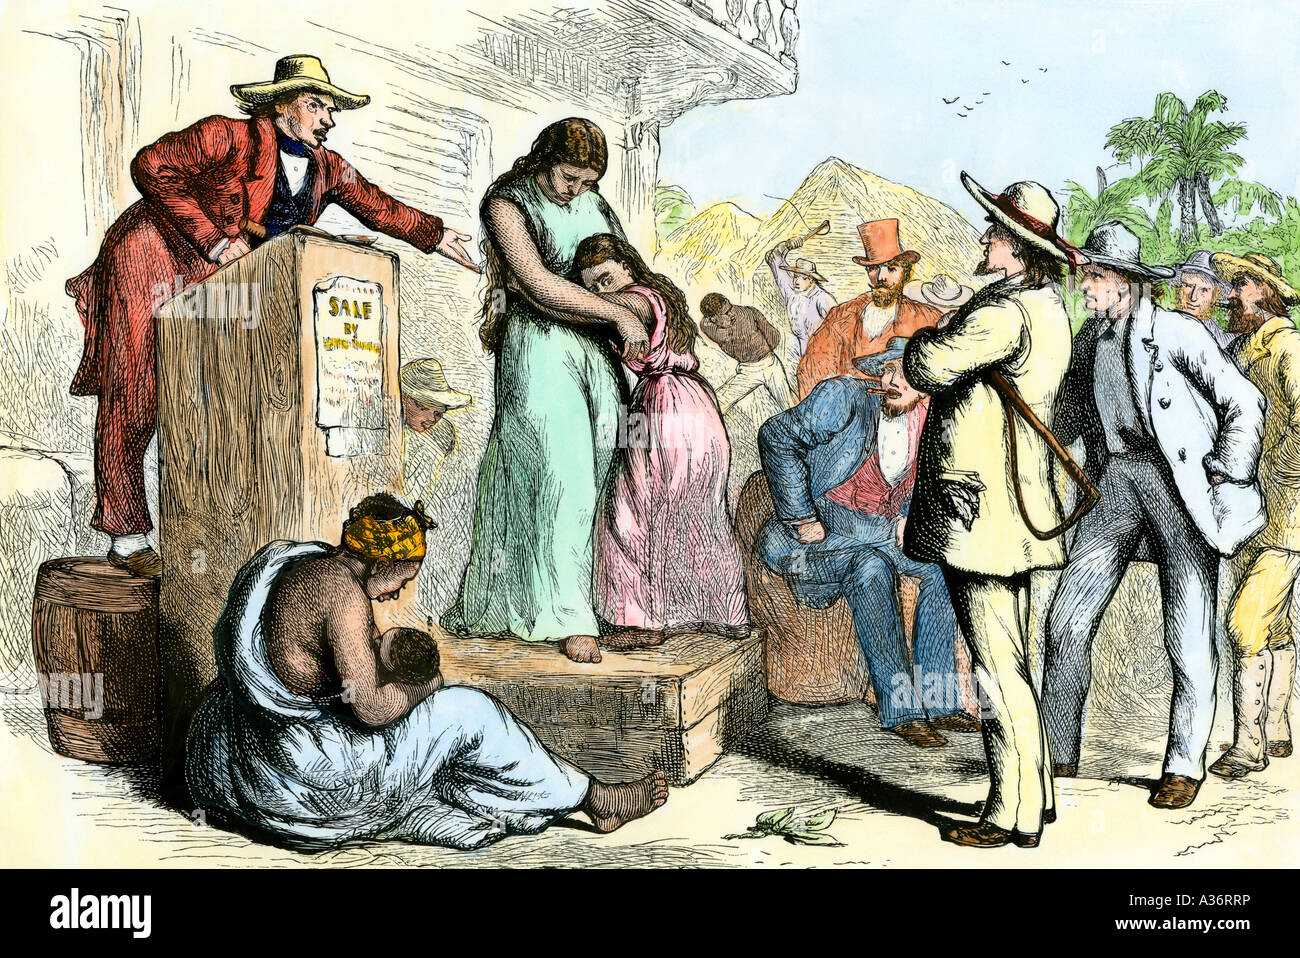 Slave mother and daughter on the auction block in the US South. Hand-colored woodcut - Stock Image